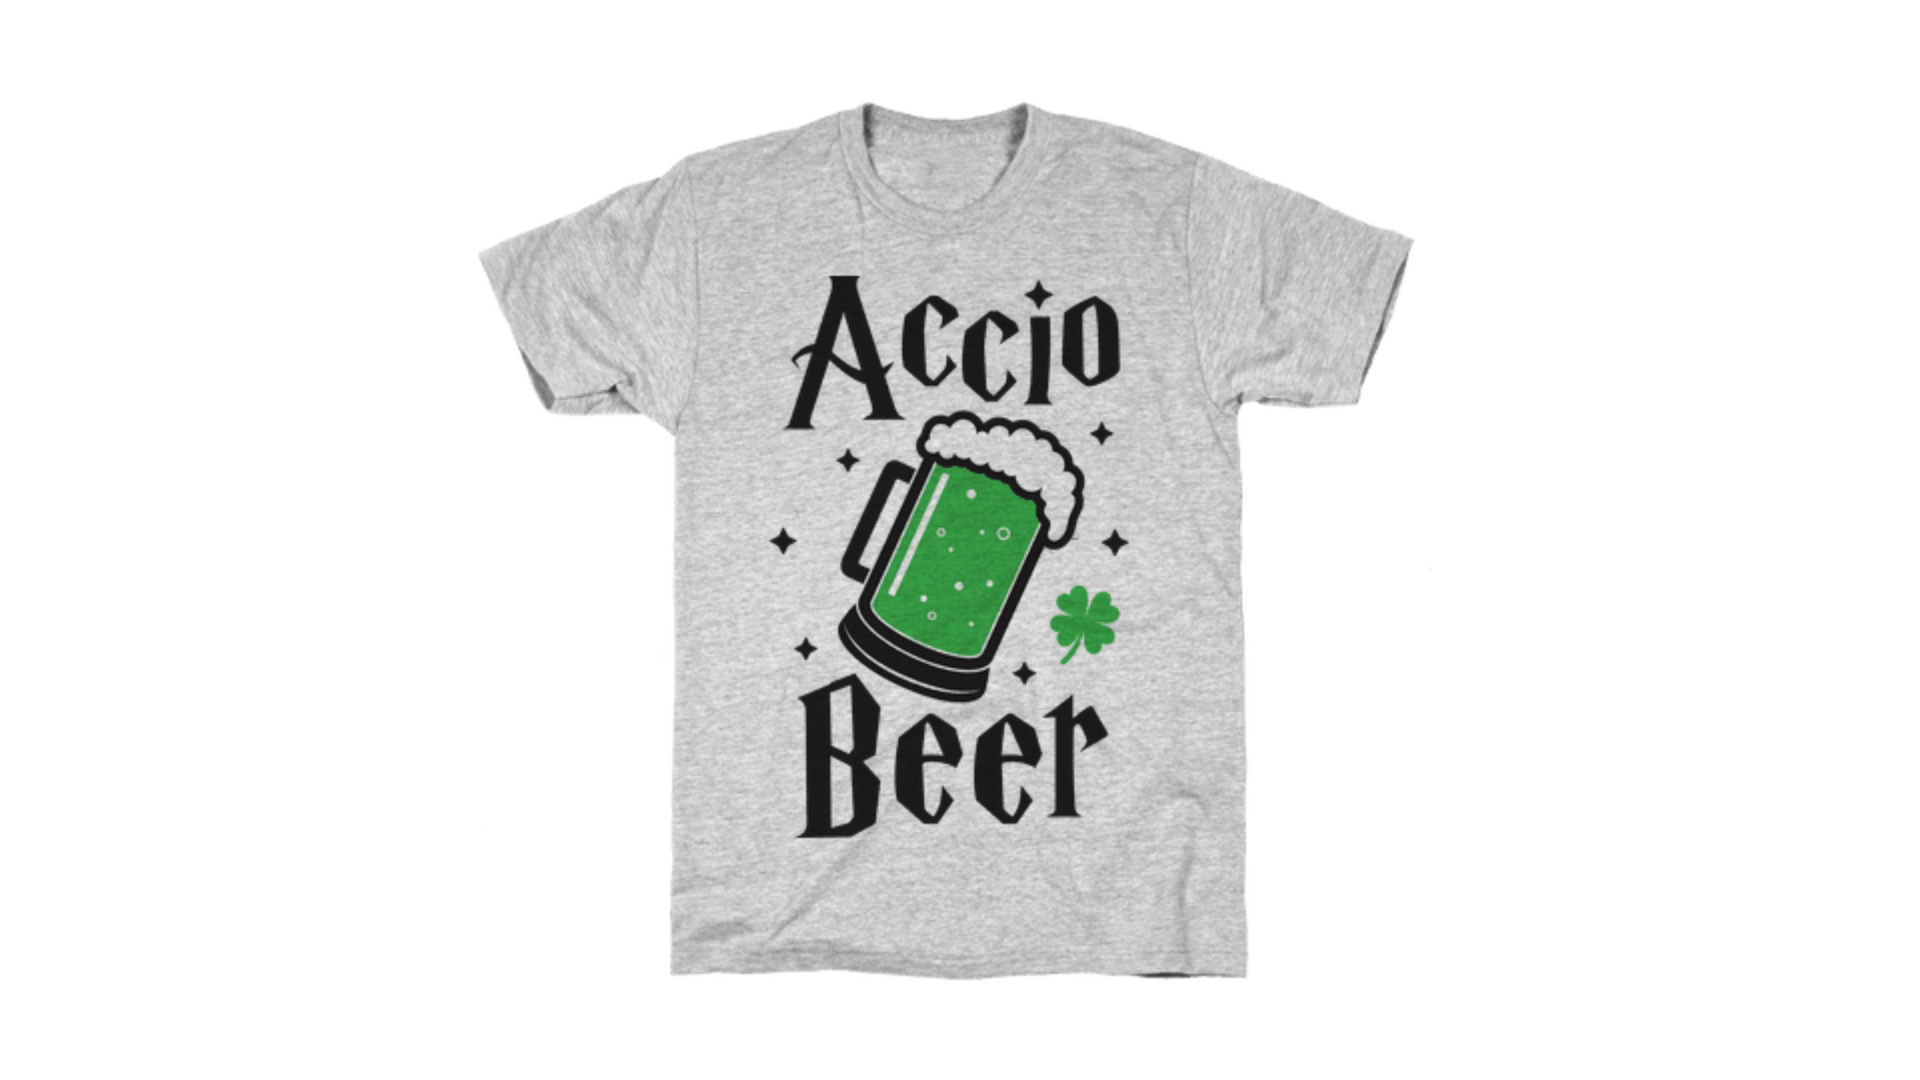 The 15 best St. Patrick's Day shirts